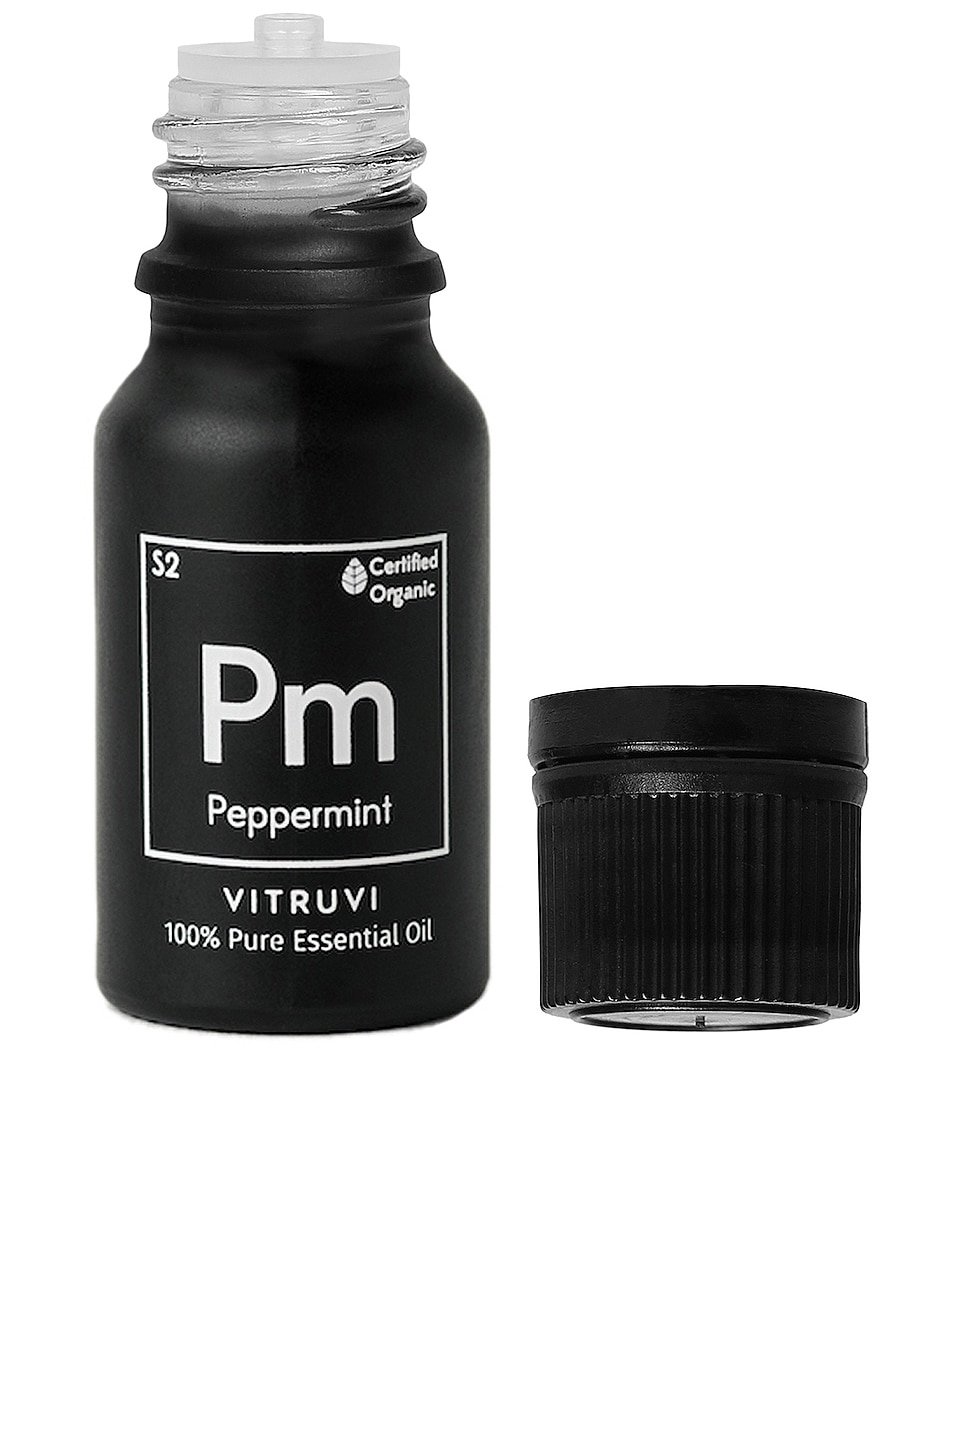 VITRUVI Peppermint Essential Oil